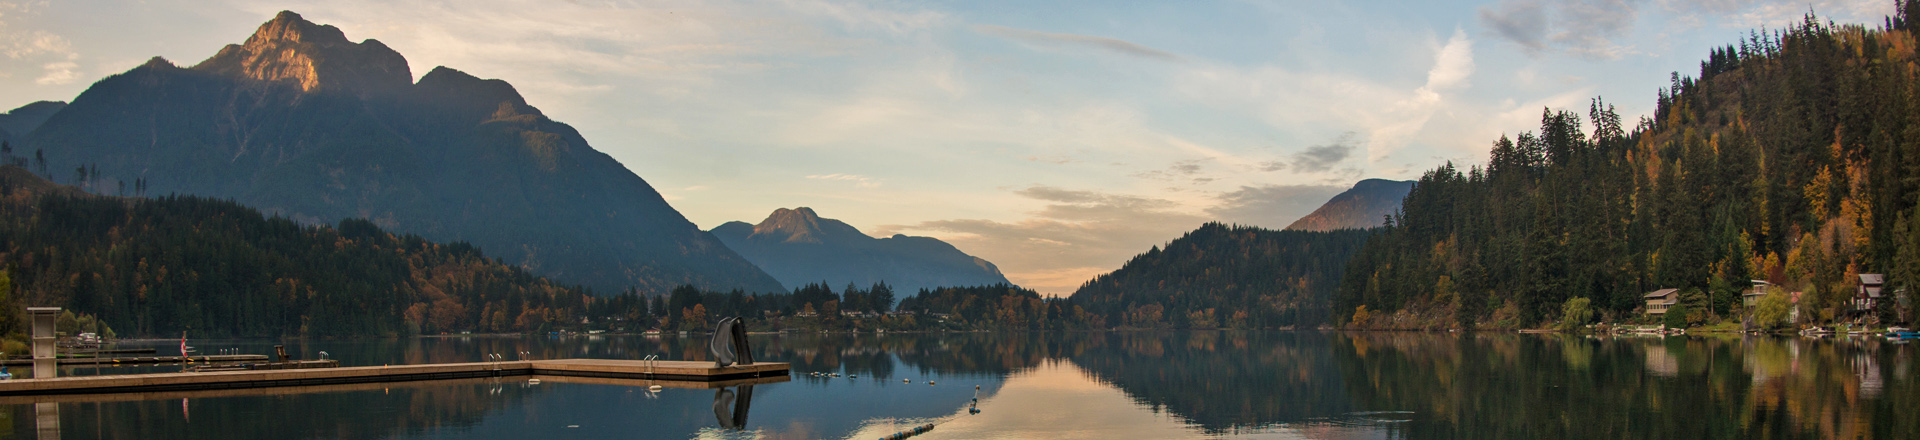 Kawkawa Camp and Retreat, Hope BC - Peter So Photography